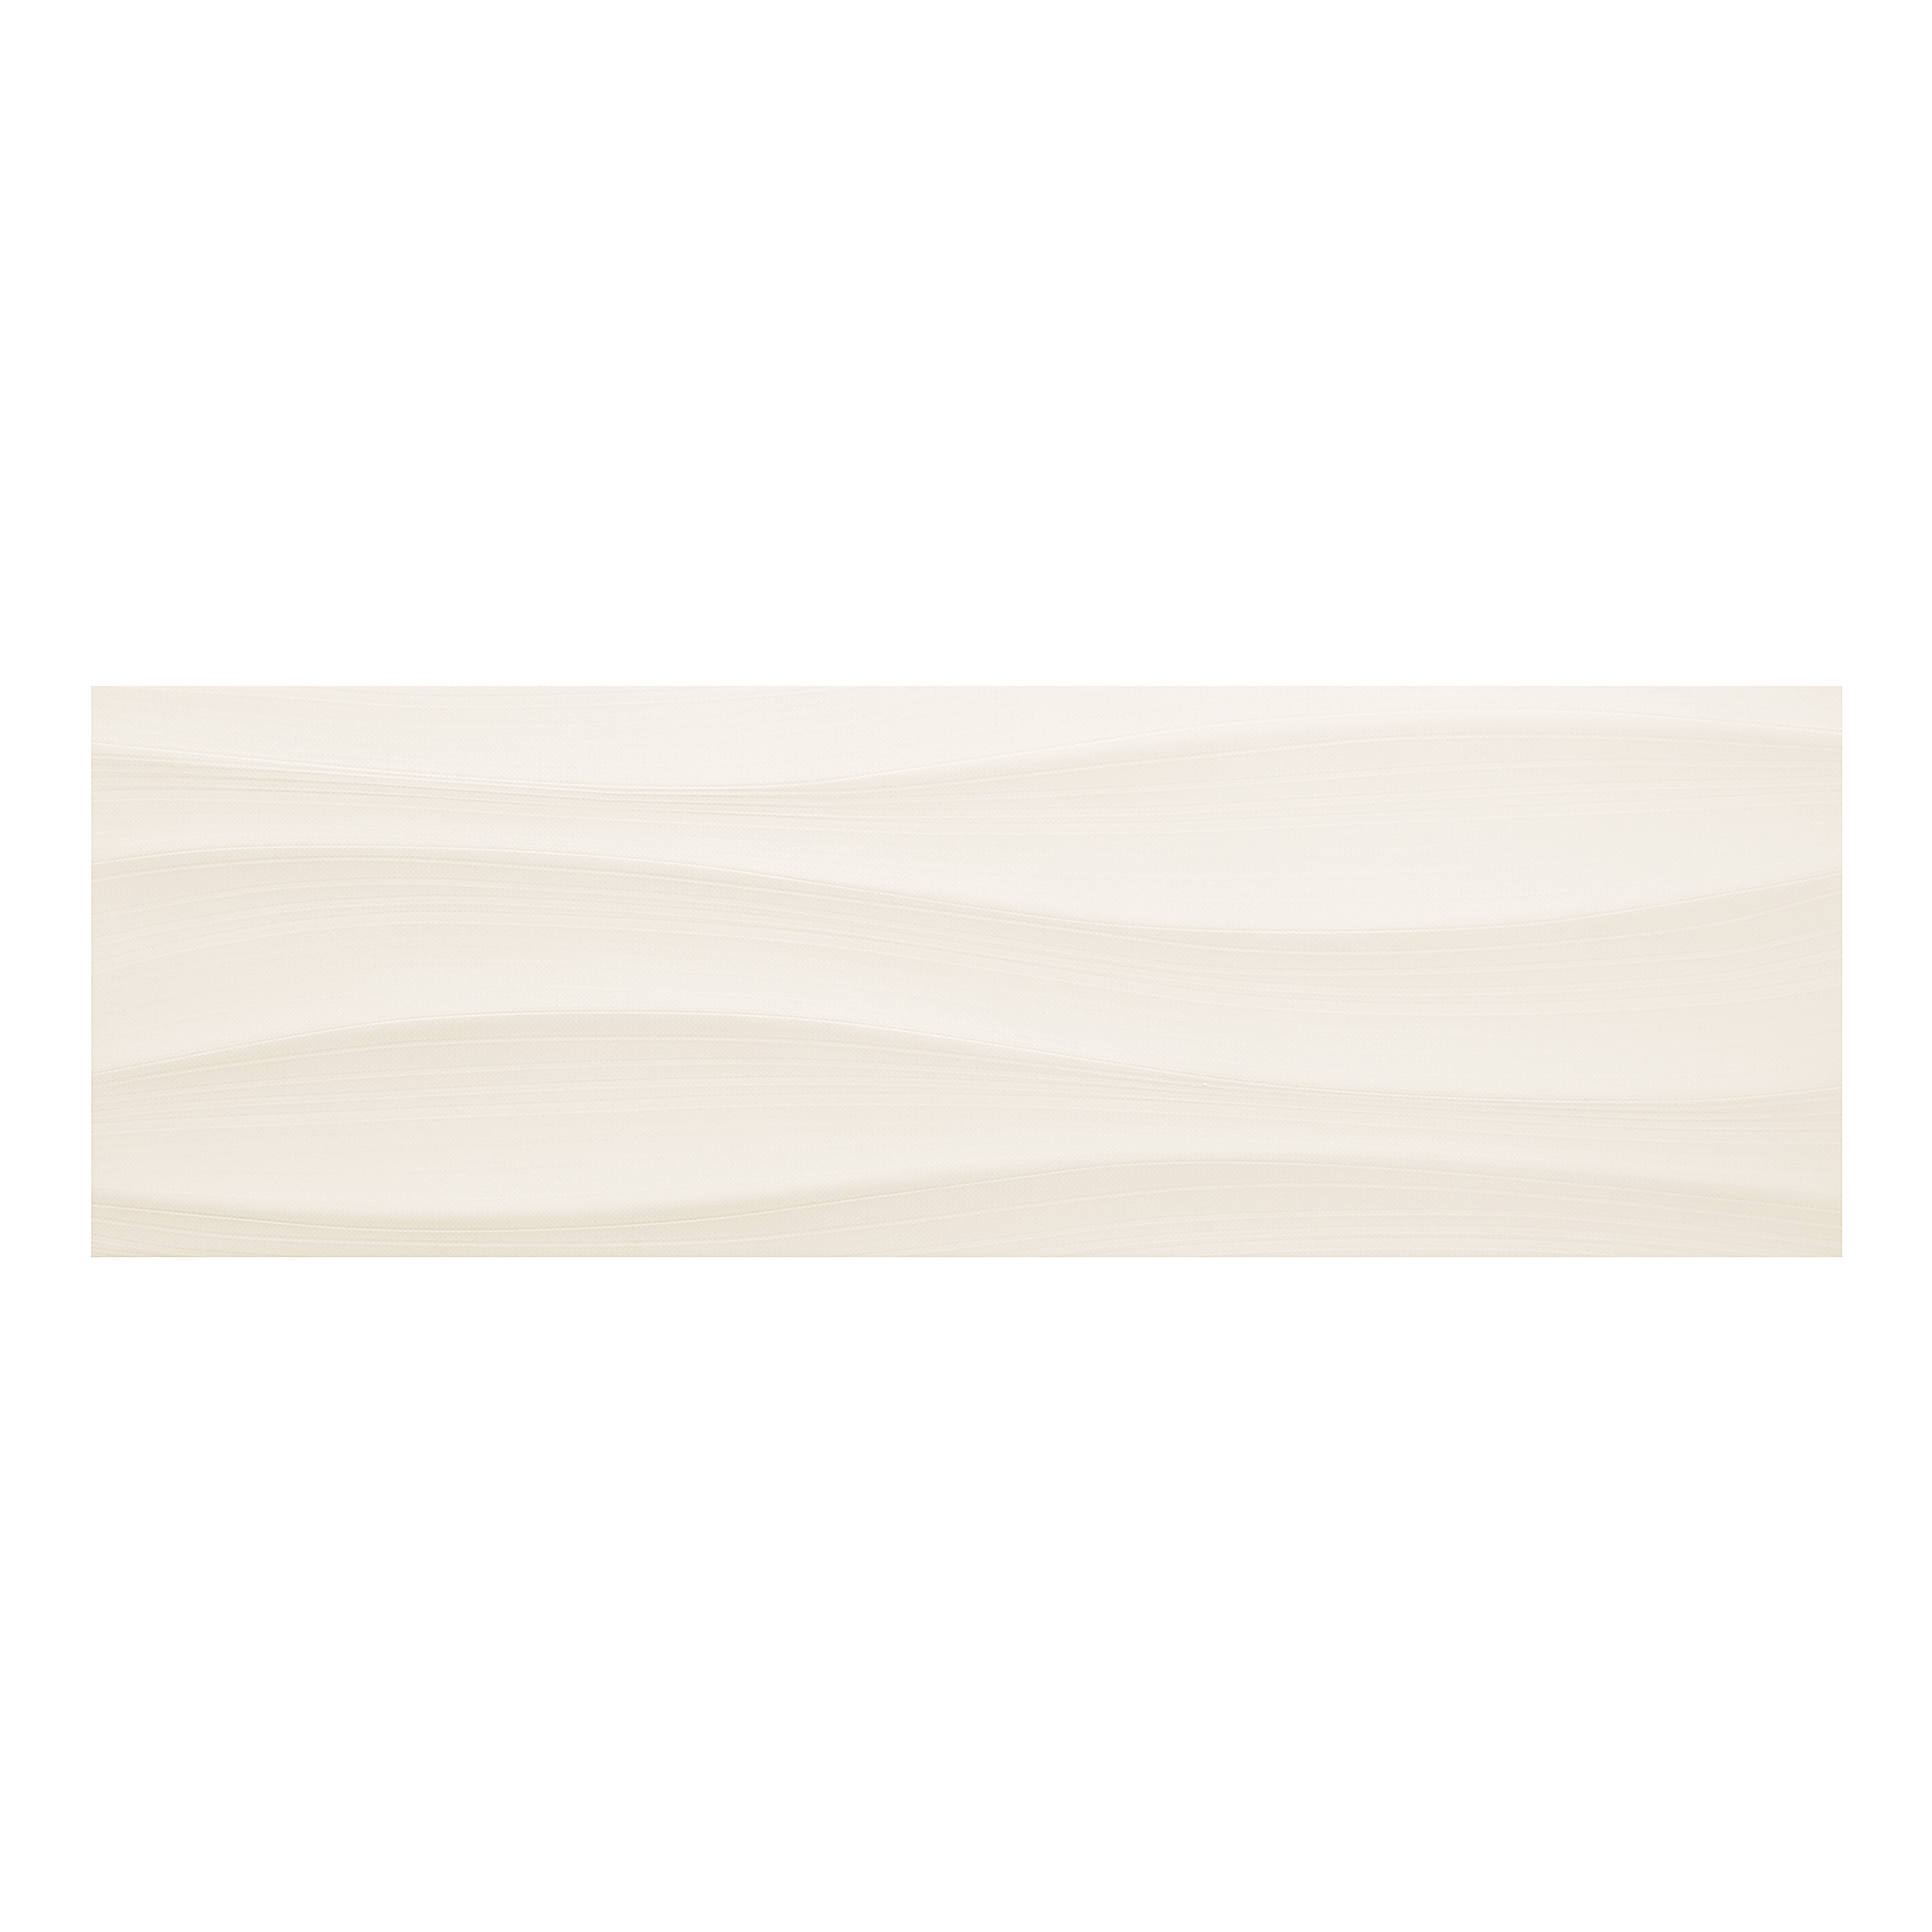 Плитка настенная Cristacer victoria blanco 25x75 плитка настенная cifre relieve accord white 25x75